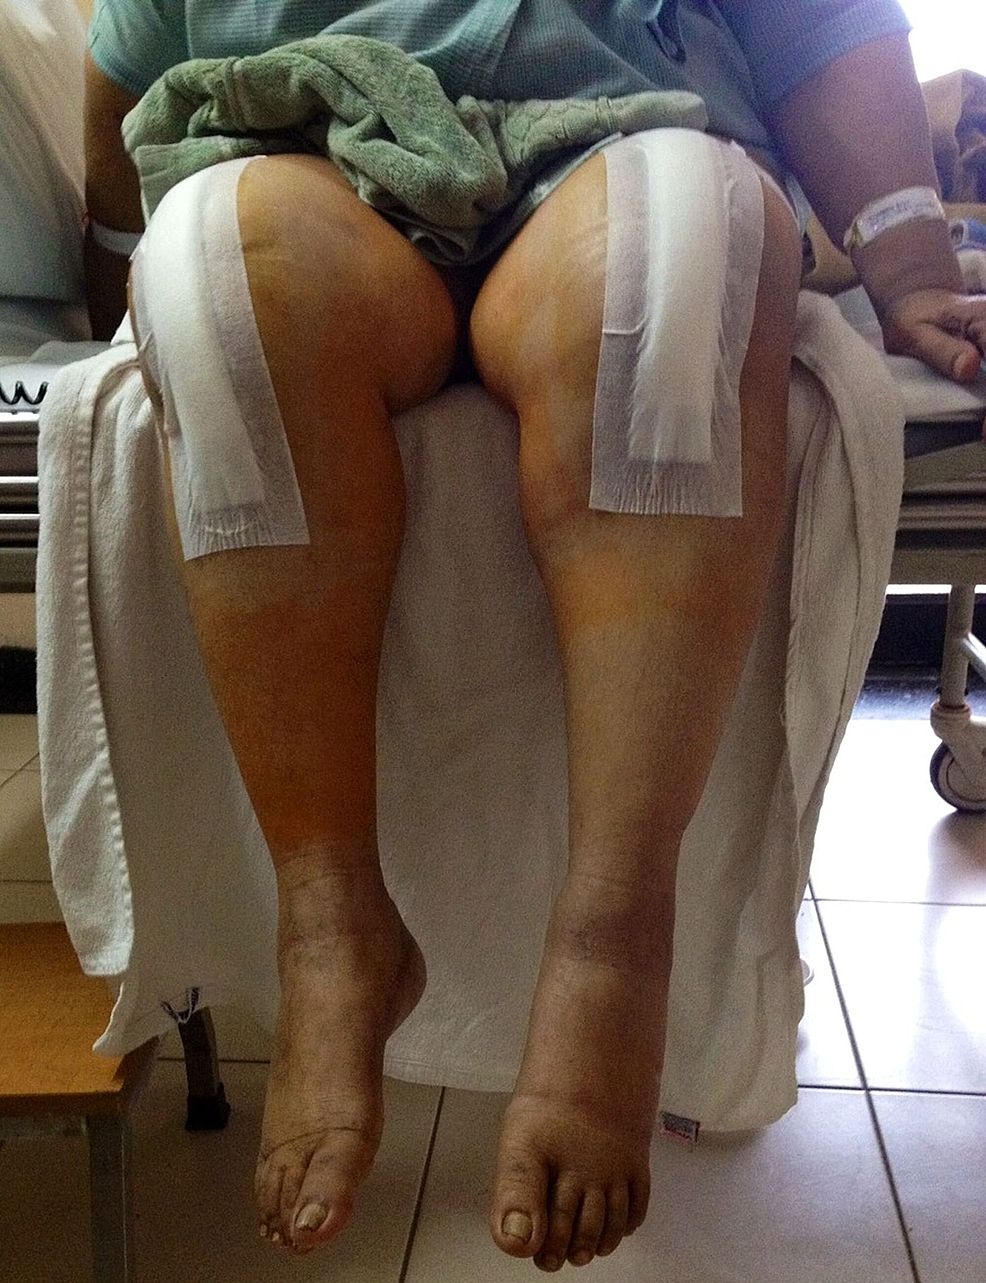 Pain-free-range-of-knee-motion-(0-90-degrees)-after-bilateral-revision-total-knee-arthroplasties-in-immediate-postoperative-period.